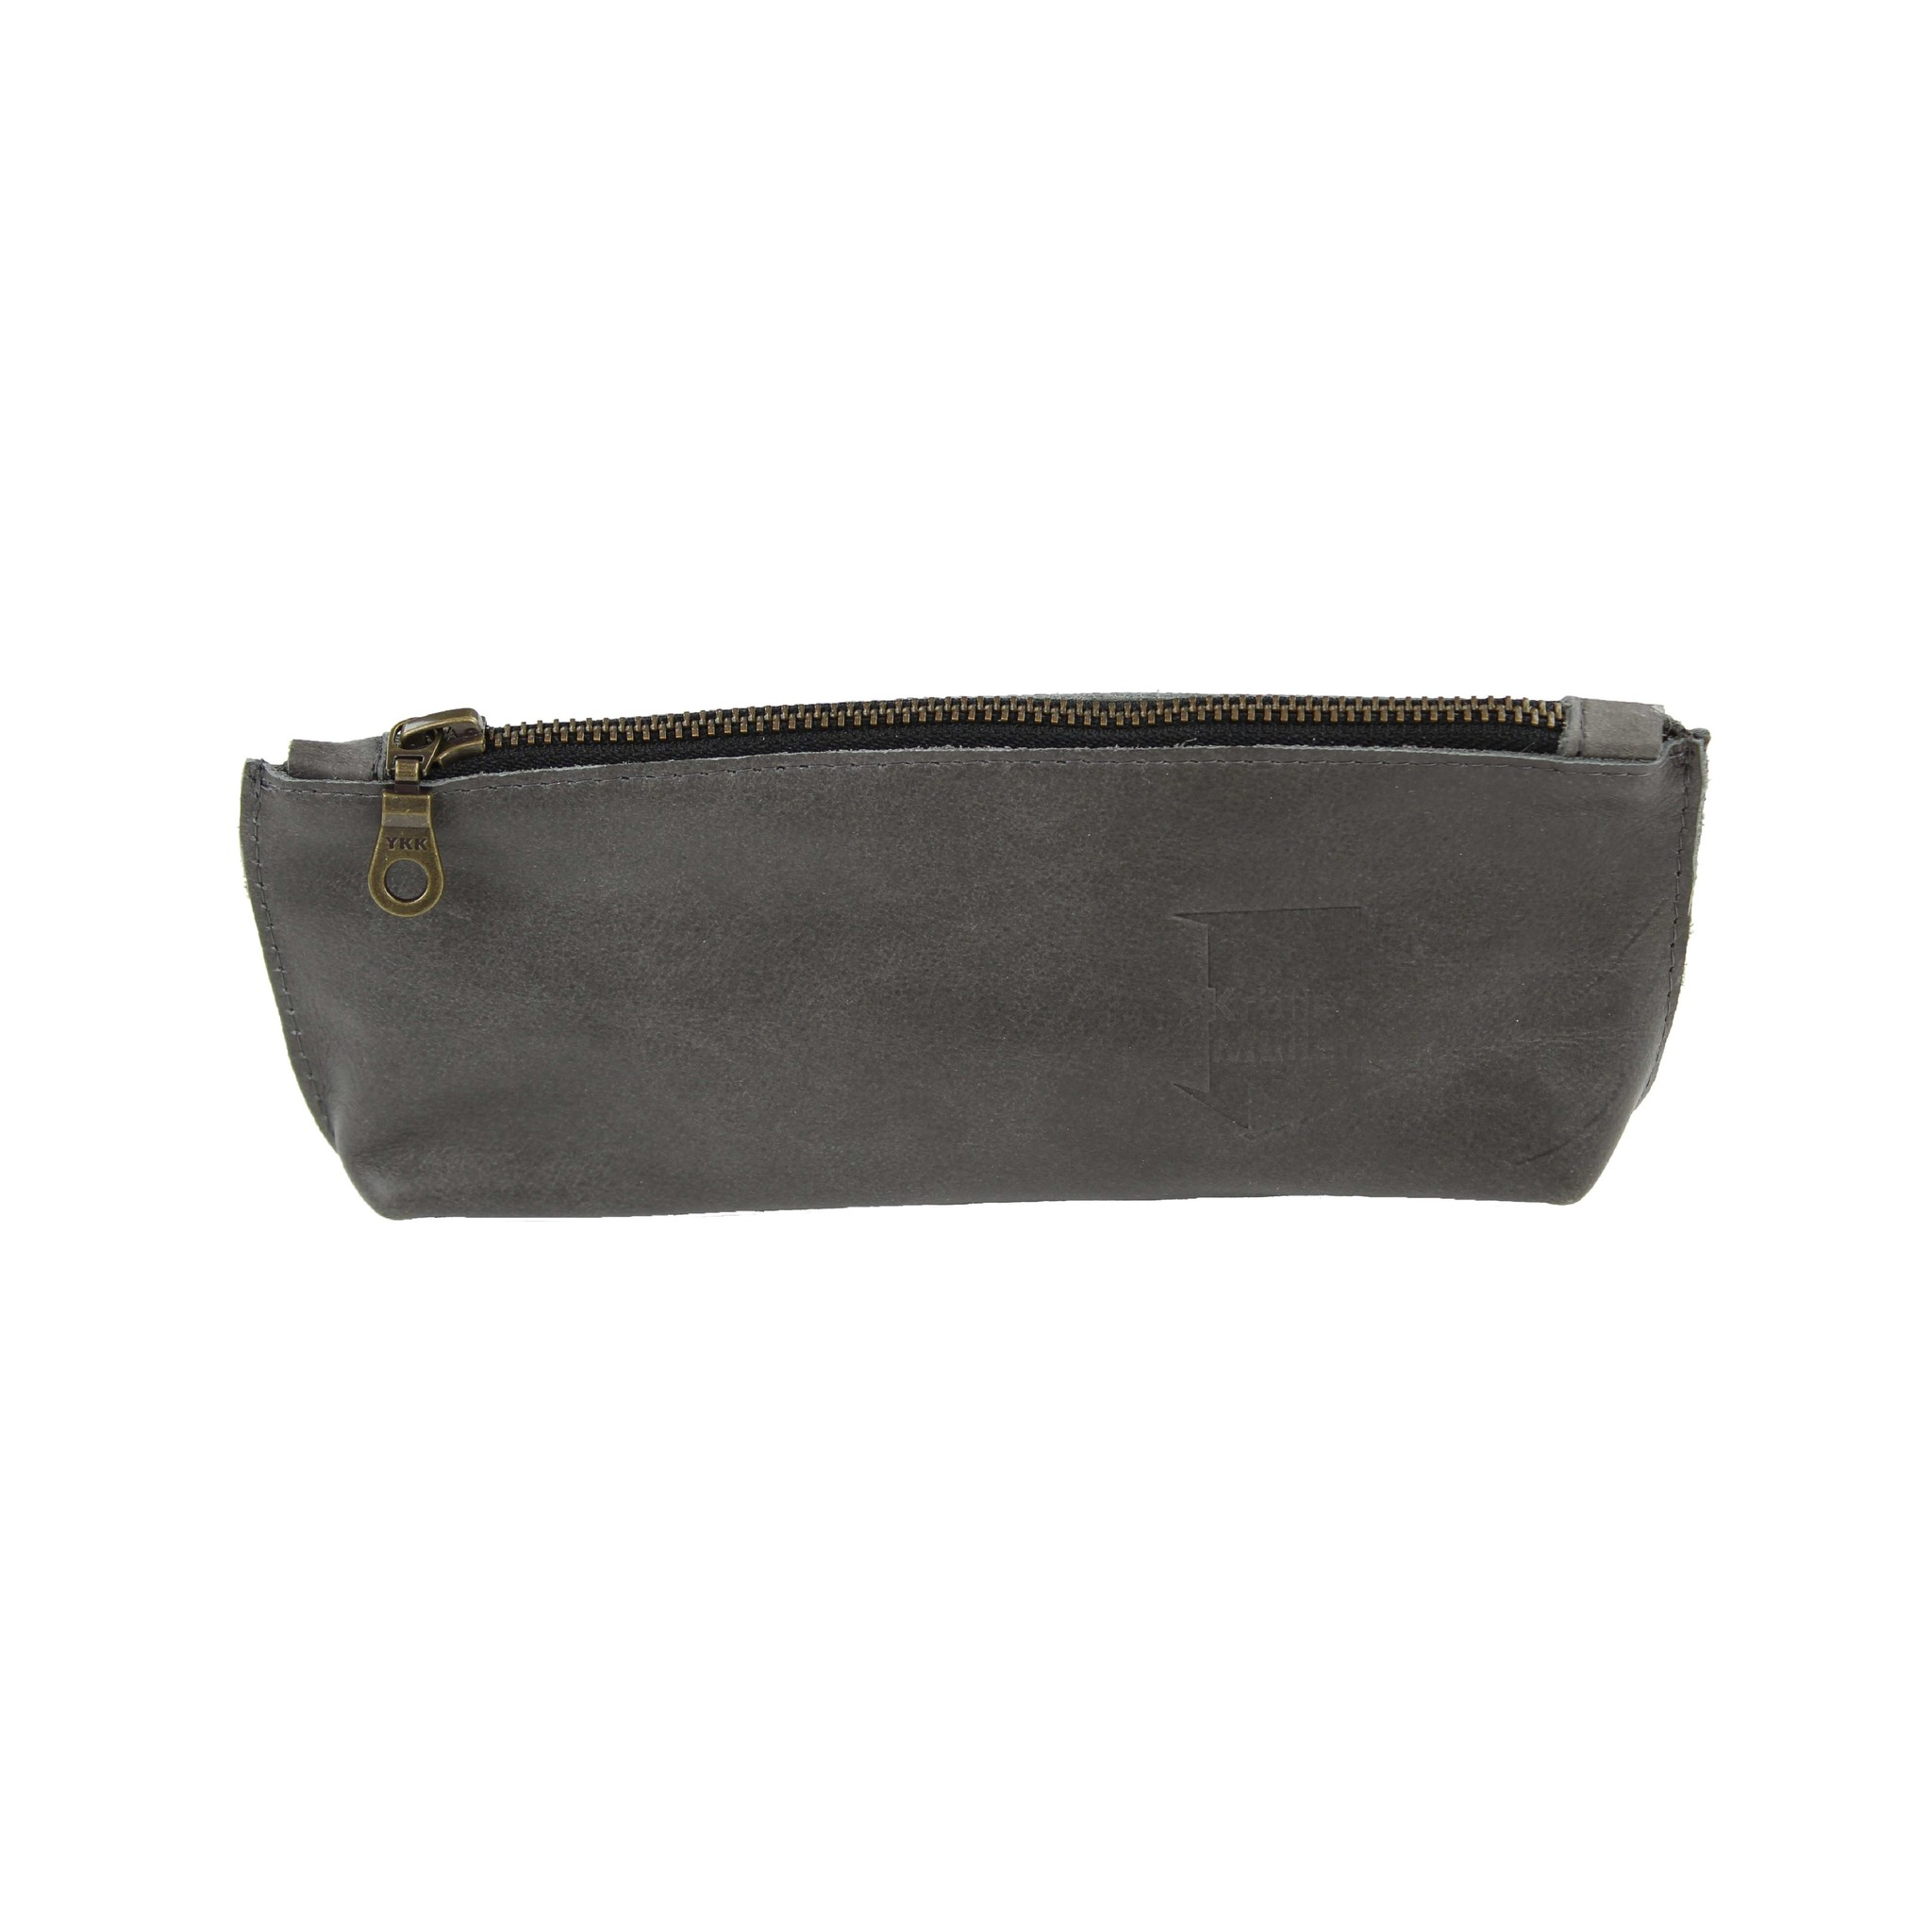 Pouch leather grey